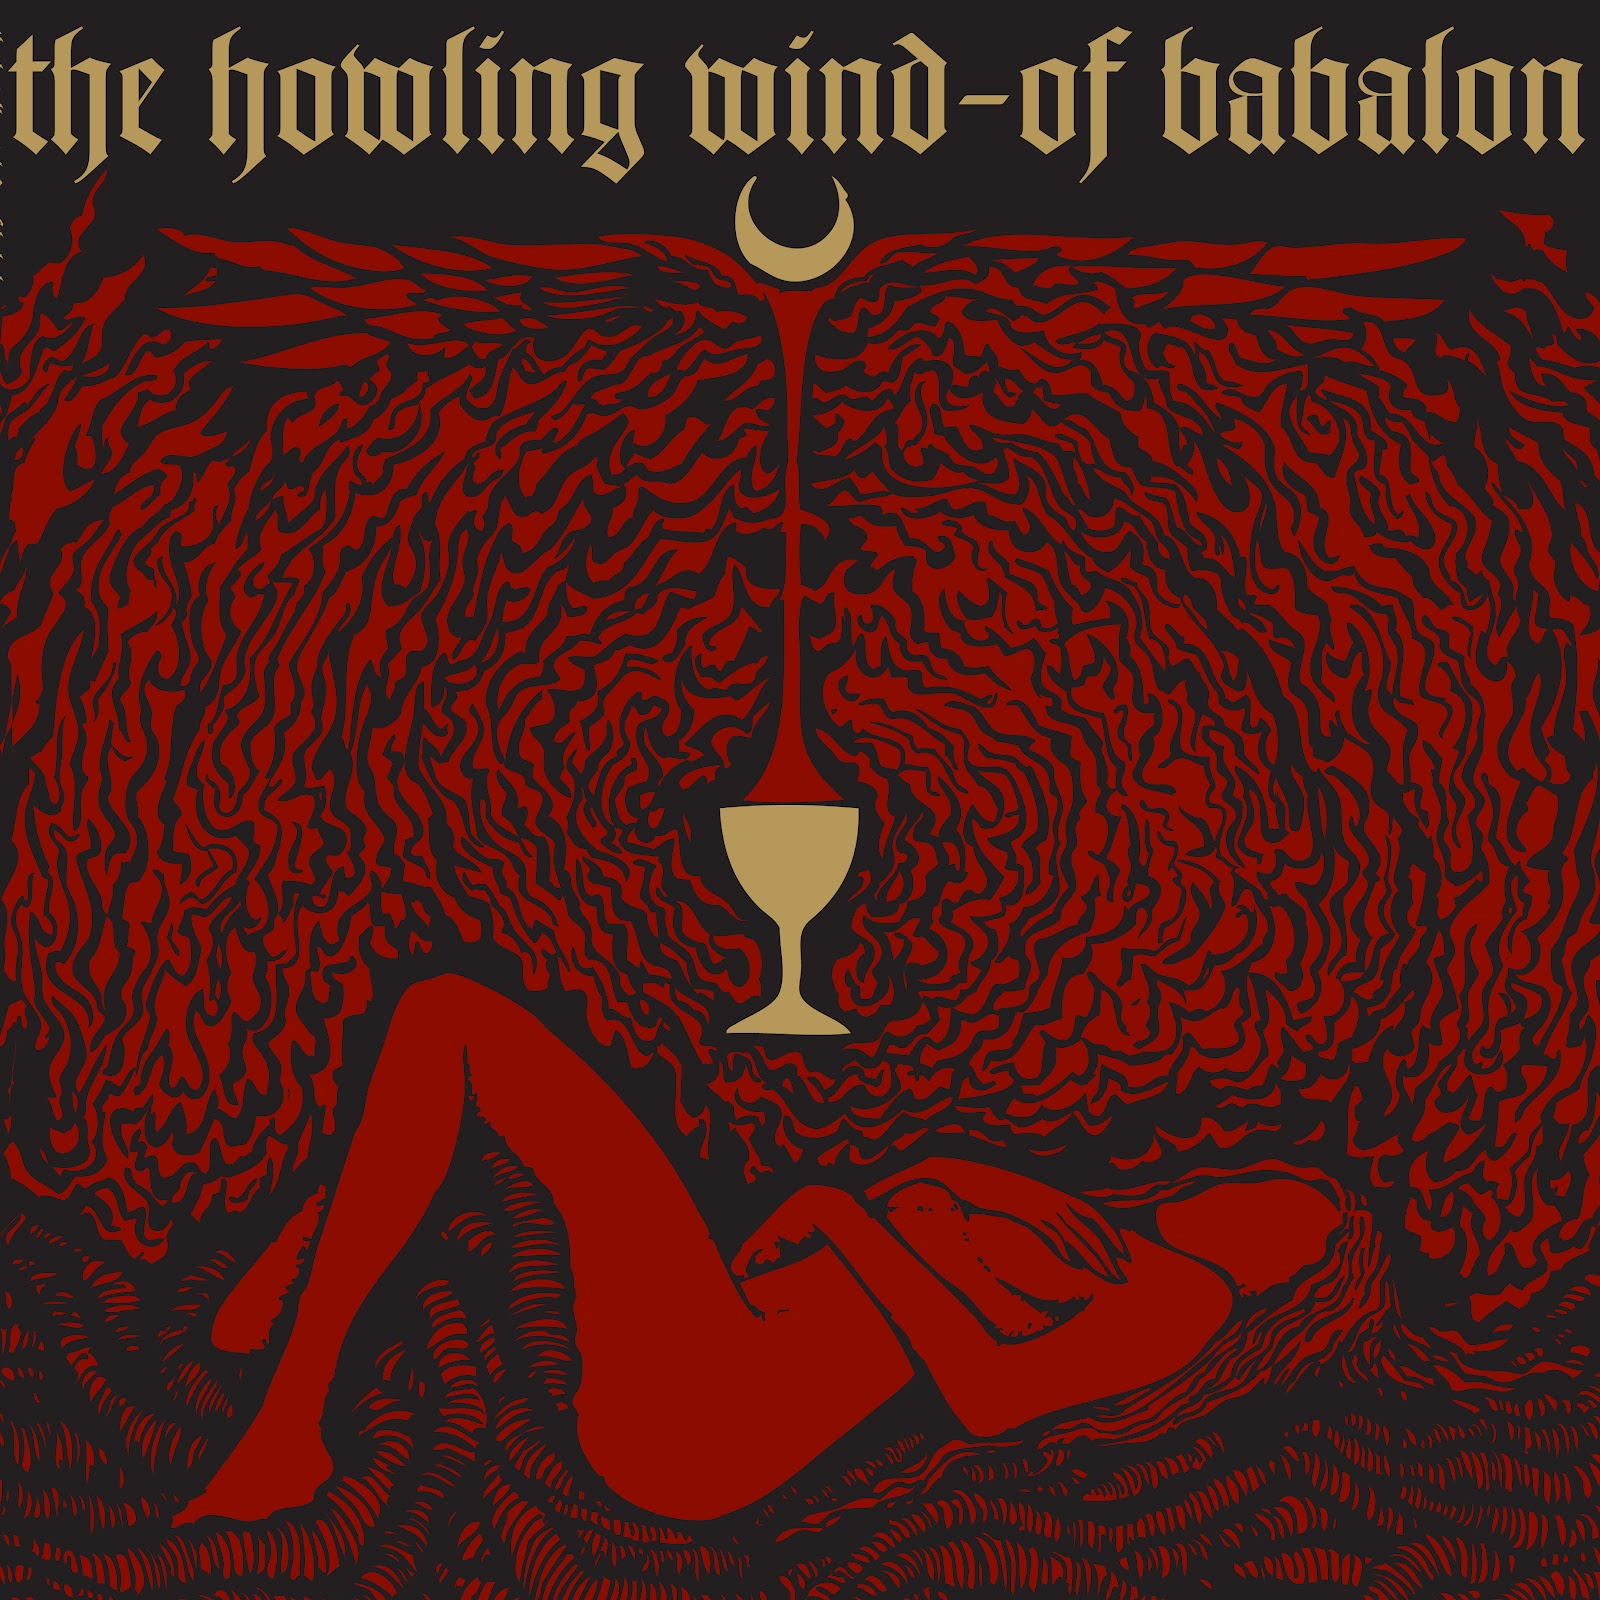 The Howling Wind, Of Babalon